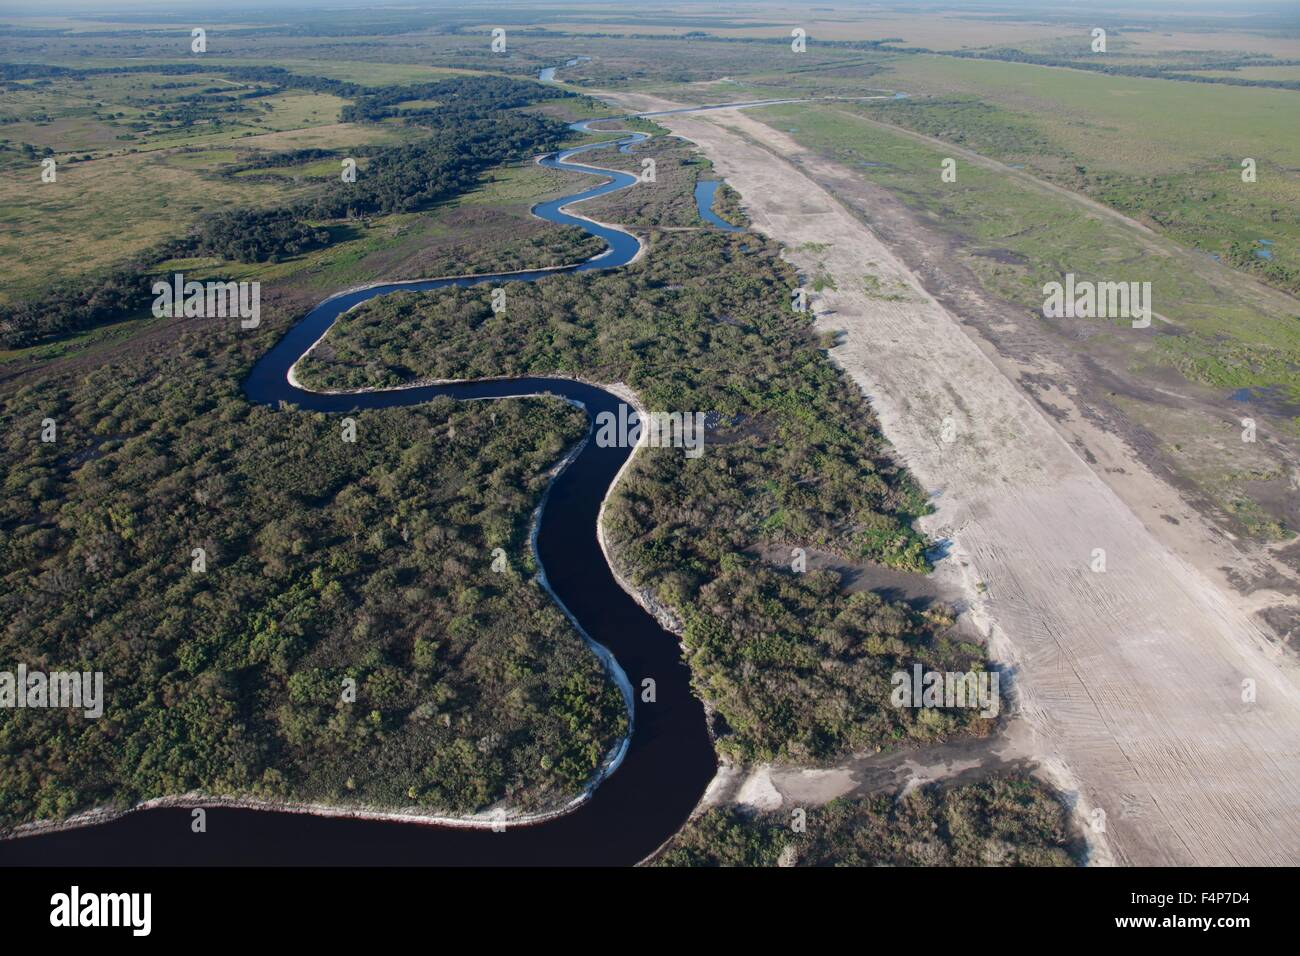 Aerial view of the Kissimmee River as it winds through central Florida eventually joining the Everglades July 7, Stock Photo